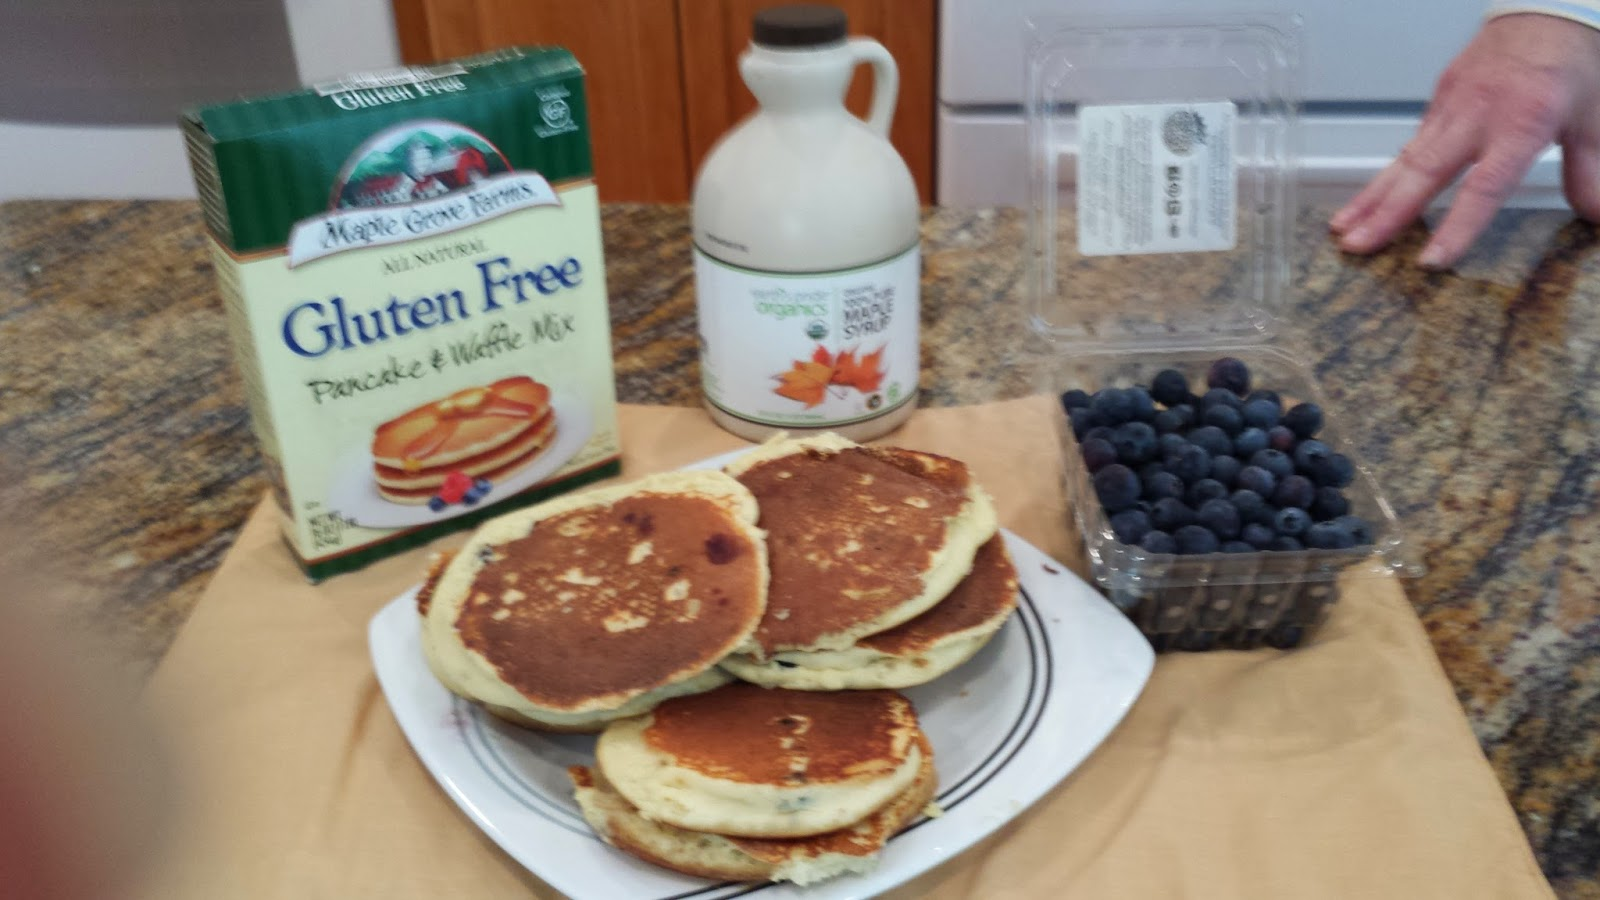 Gluten Free pancake mix and gluten free pancakes on a plate